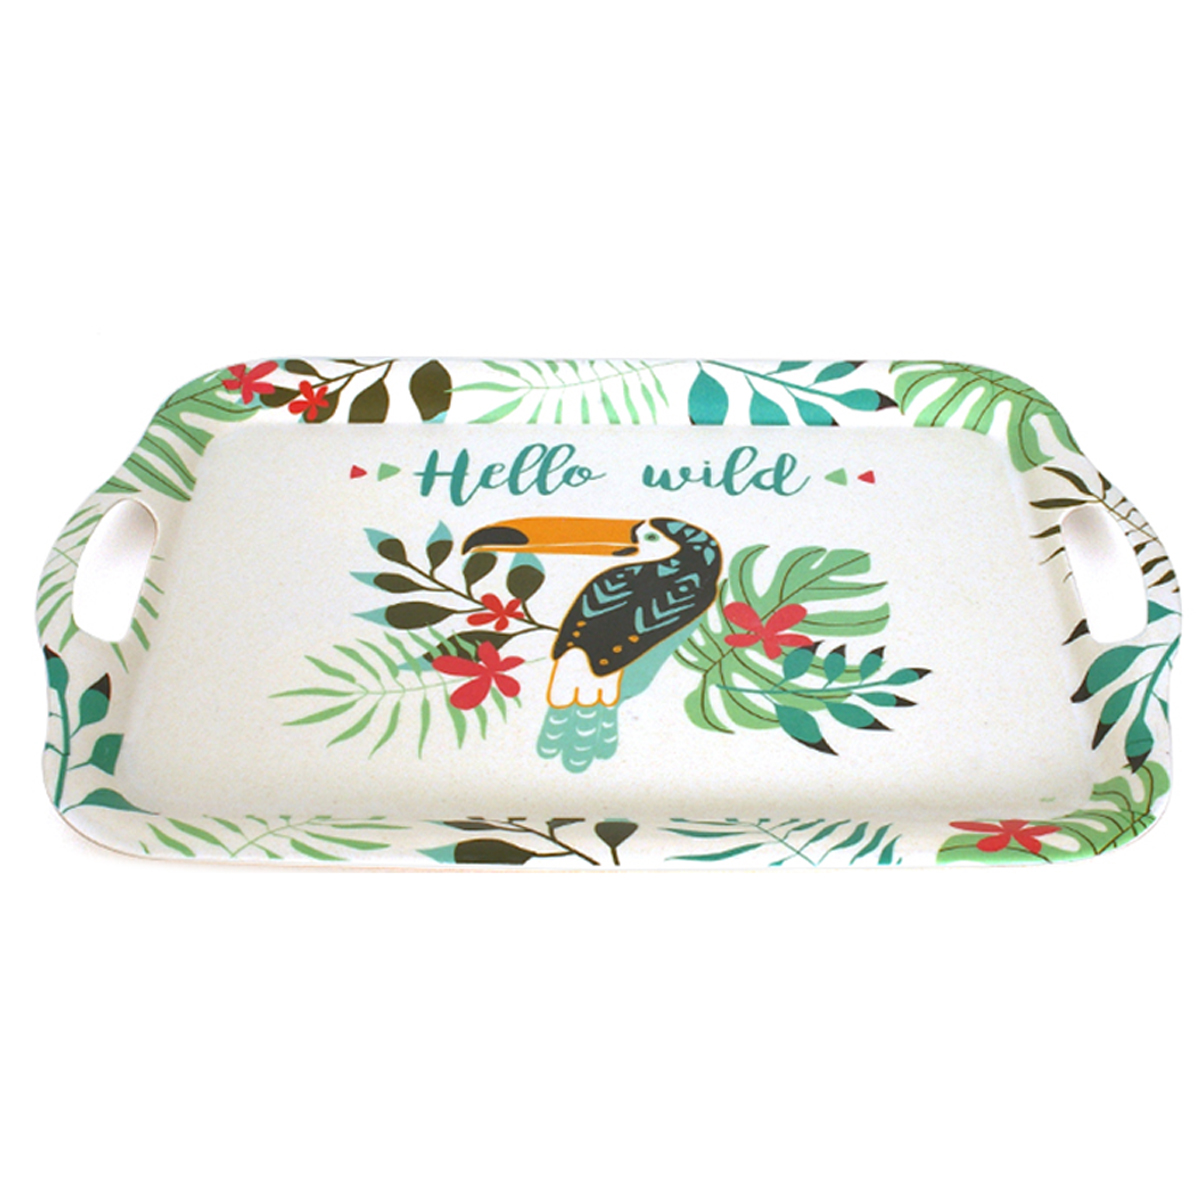 Grand plateau bambou \'Tropical\' multicolore (toucan, hello wild) - 42x29 cm - [A0225]